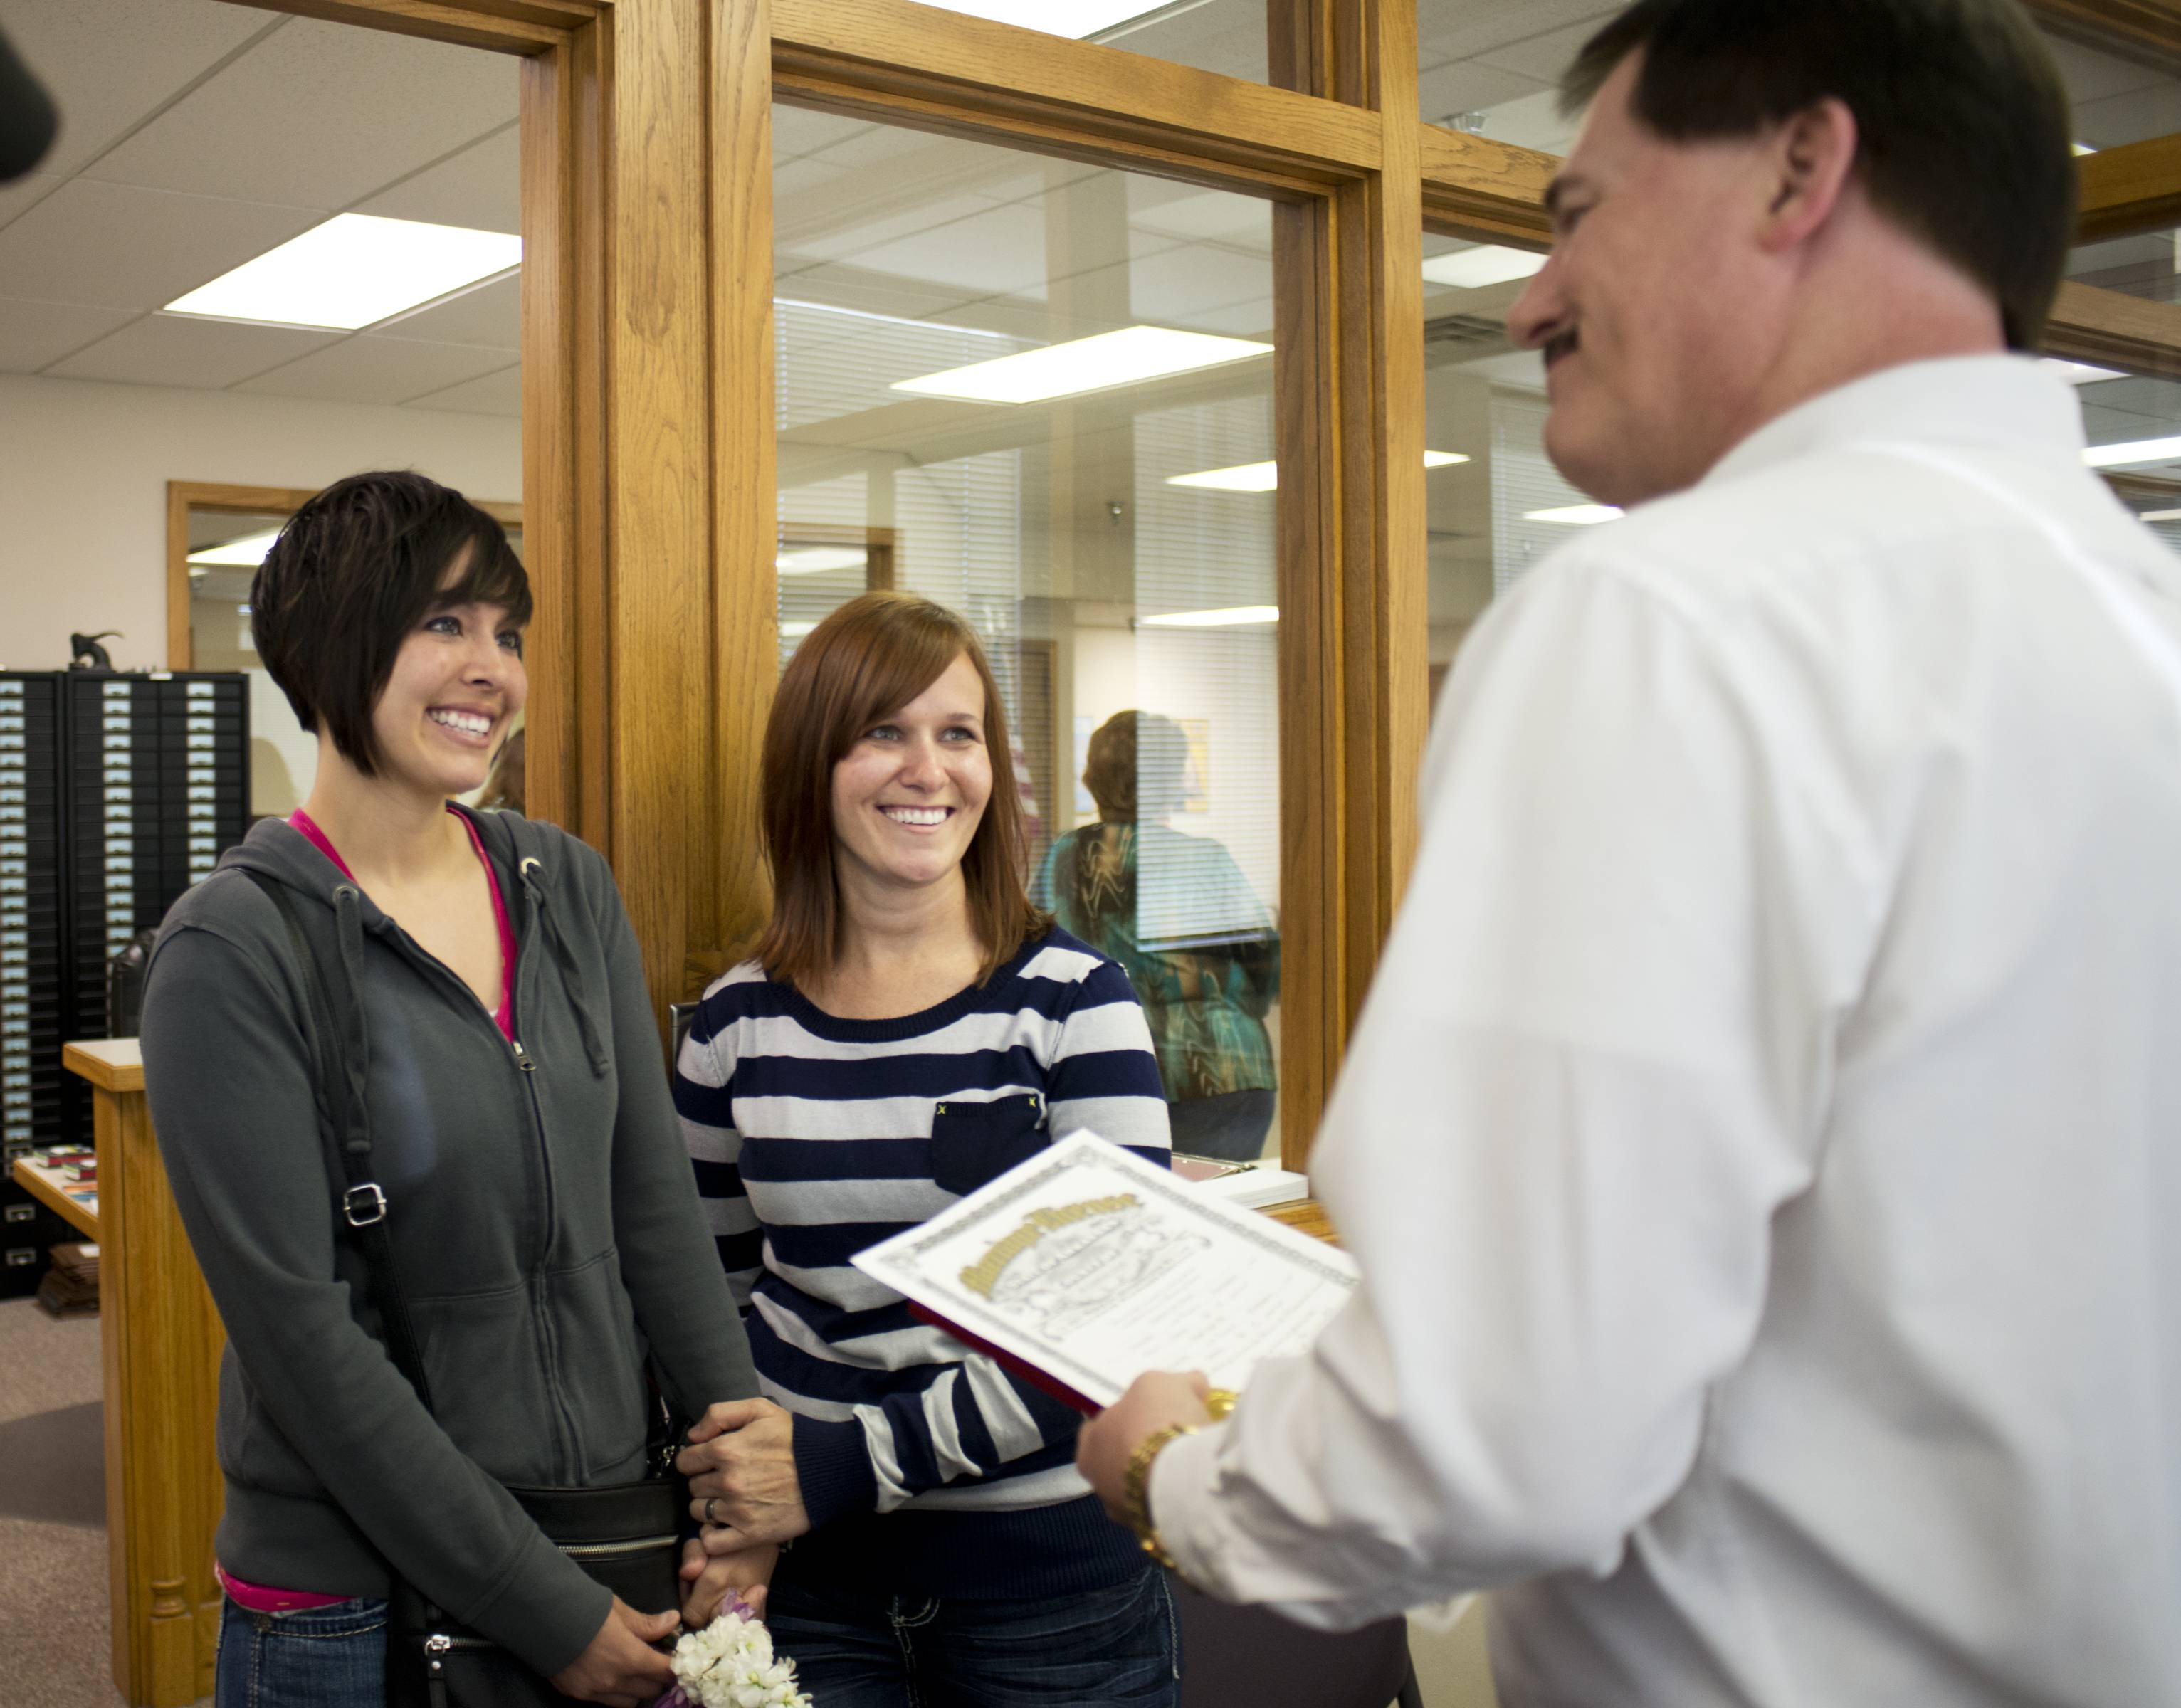 Beth Moore, left, and Abby Hill exchange vows in a marriage ceremony performed Friday by Jeremy Hernandez at the Washington County courthouse in Fayetteville, Arkansas. Later Friday, the state's Supreme Court halted the distribution of marriage licenses to same-sex couples.